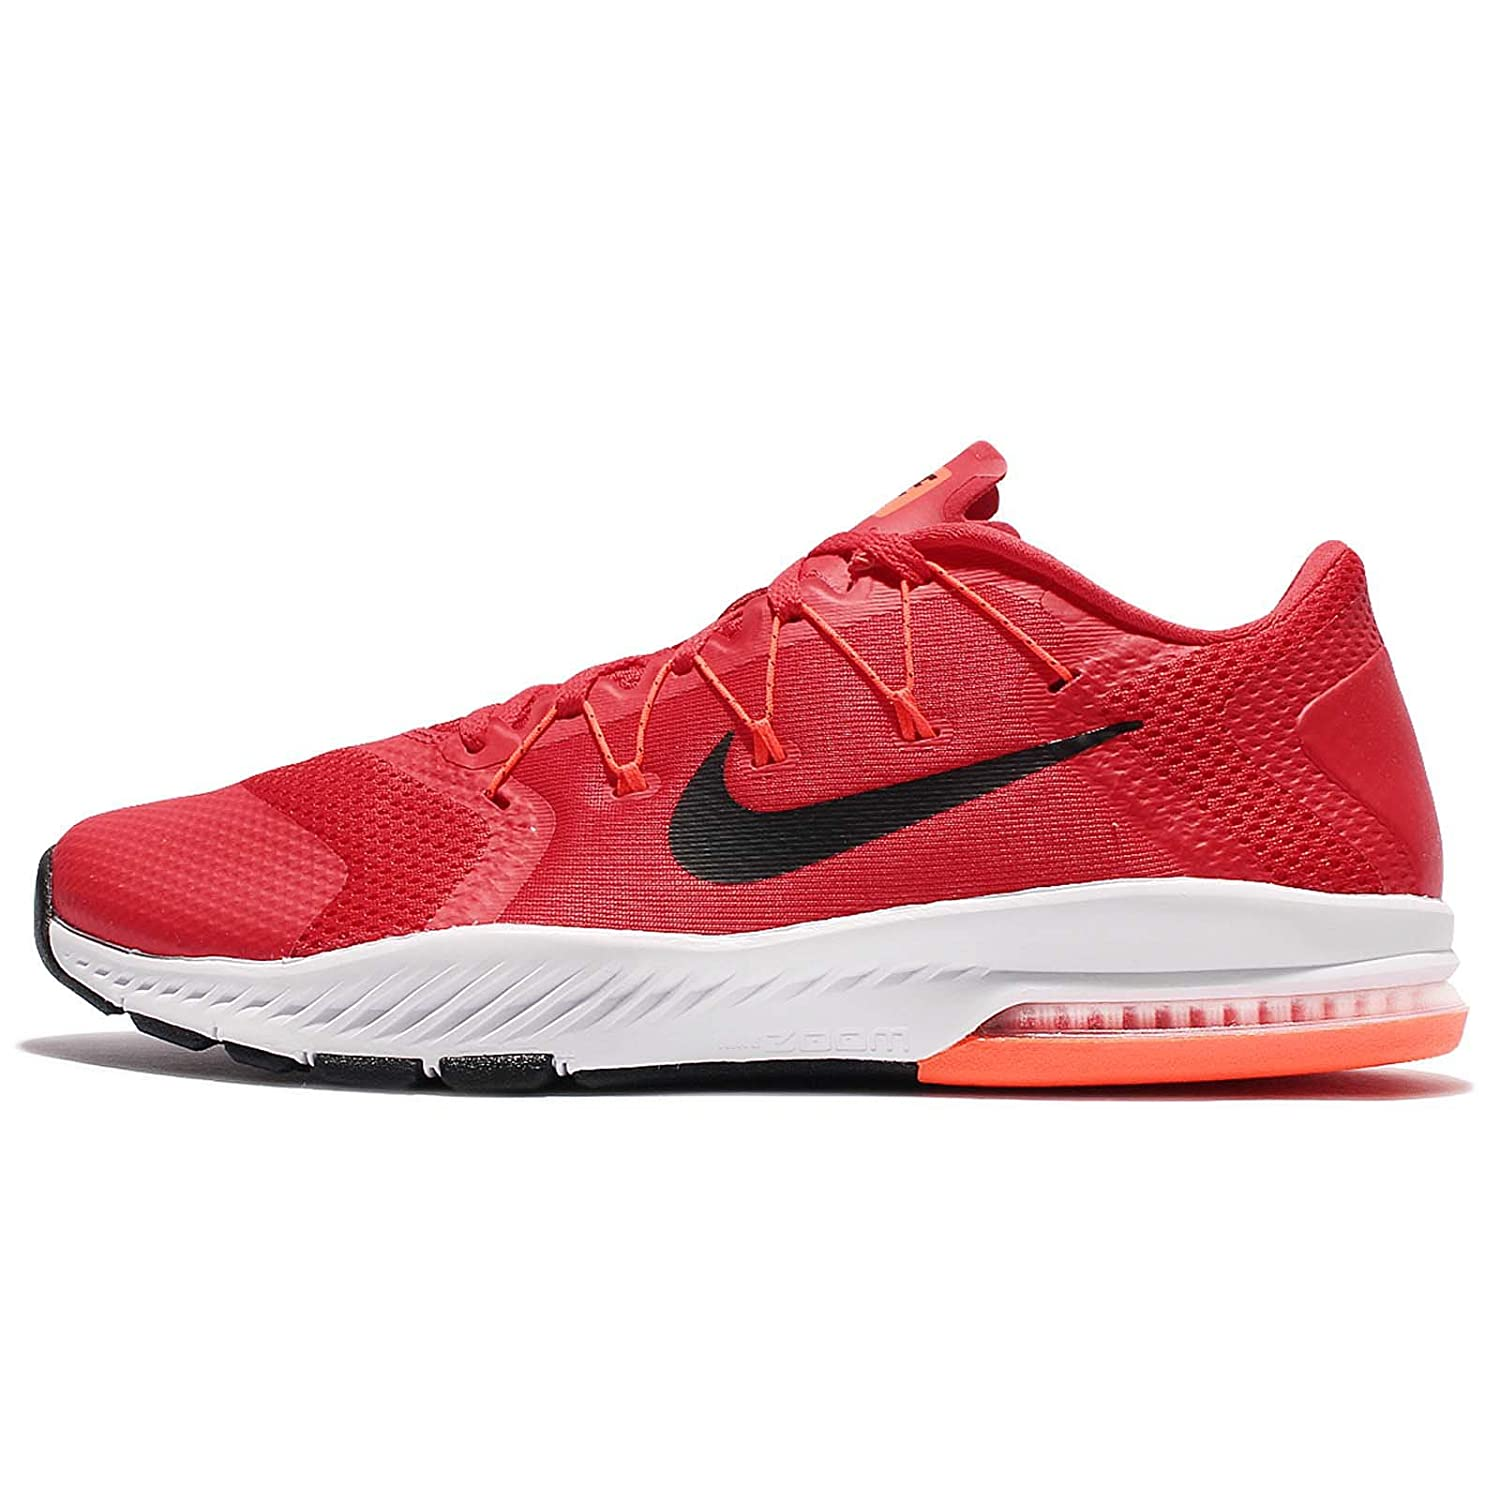 NIKE Air Zoom Train Complete Mens Running Trainers 882119 Sneakers Shoes B01DLD5DMC 14 D(M) US|Action Red Black Crimson 600